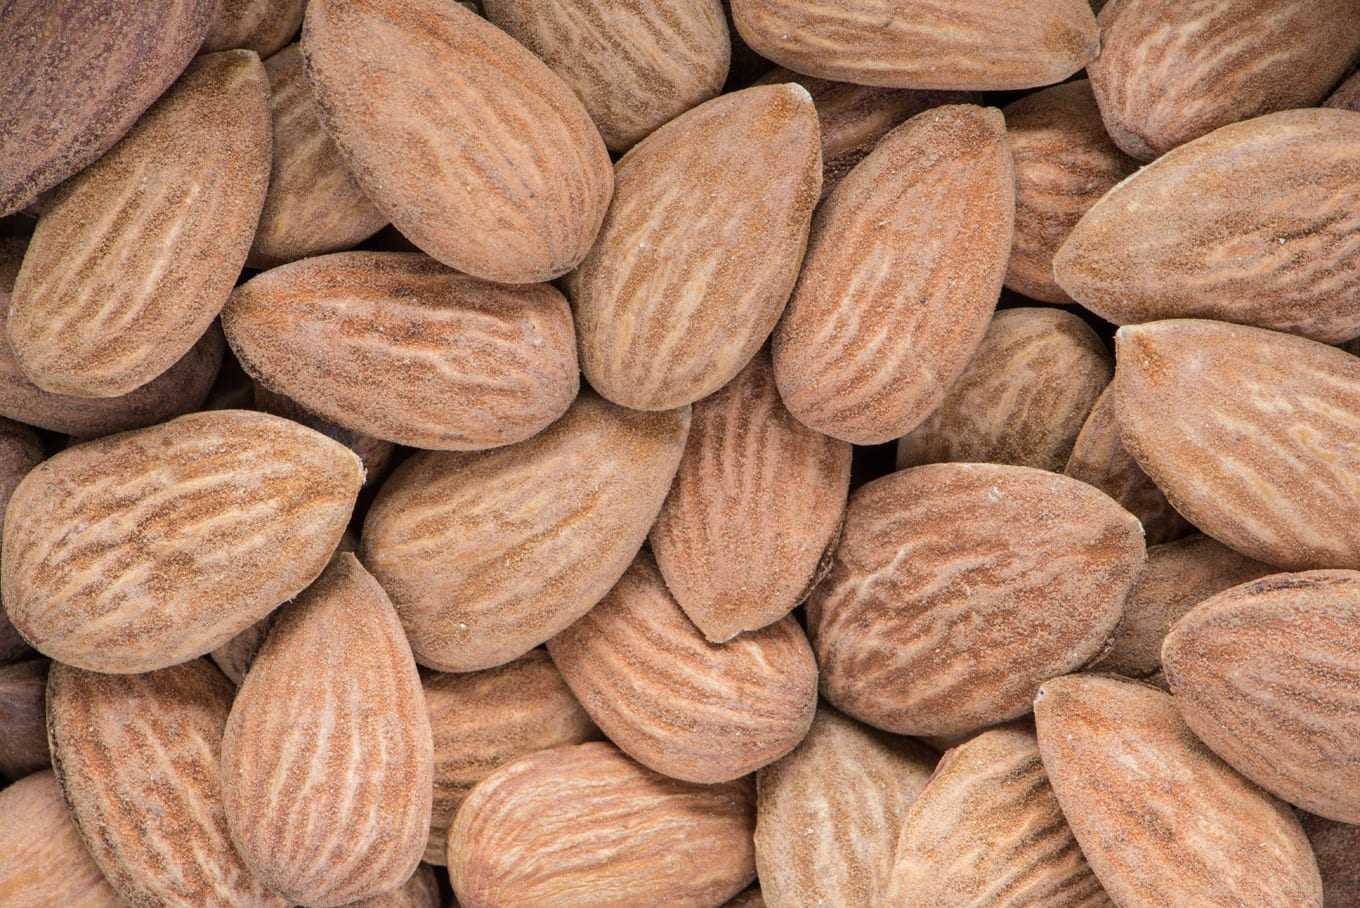 antioxidant-containing raw almonds